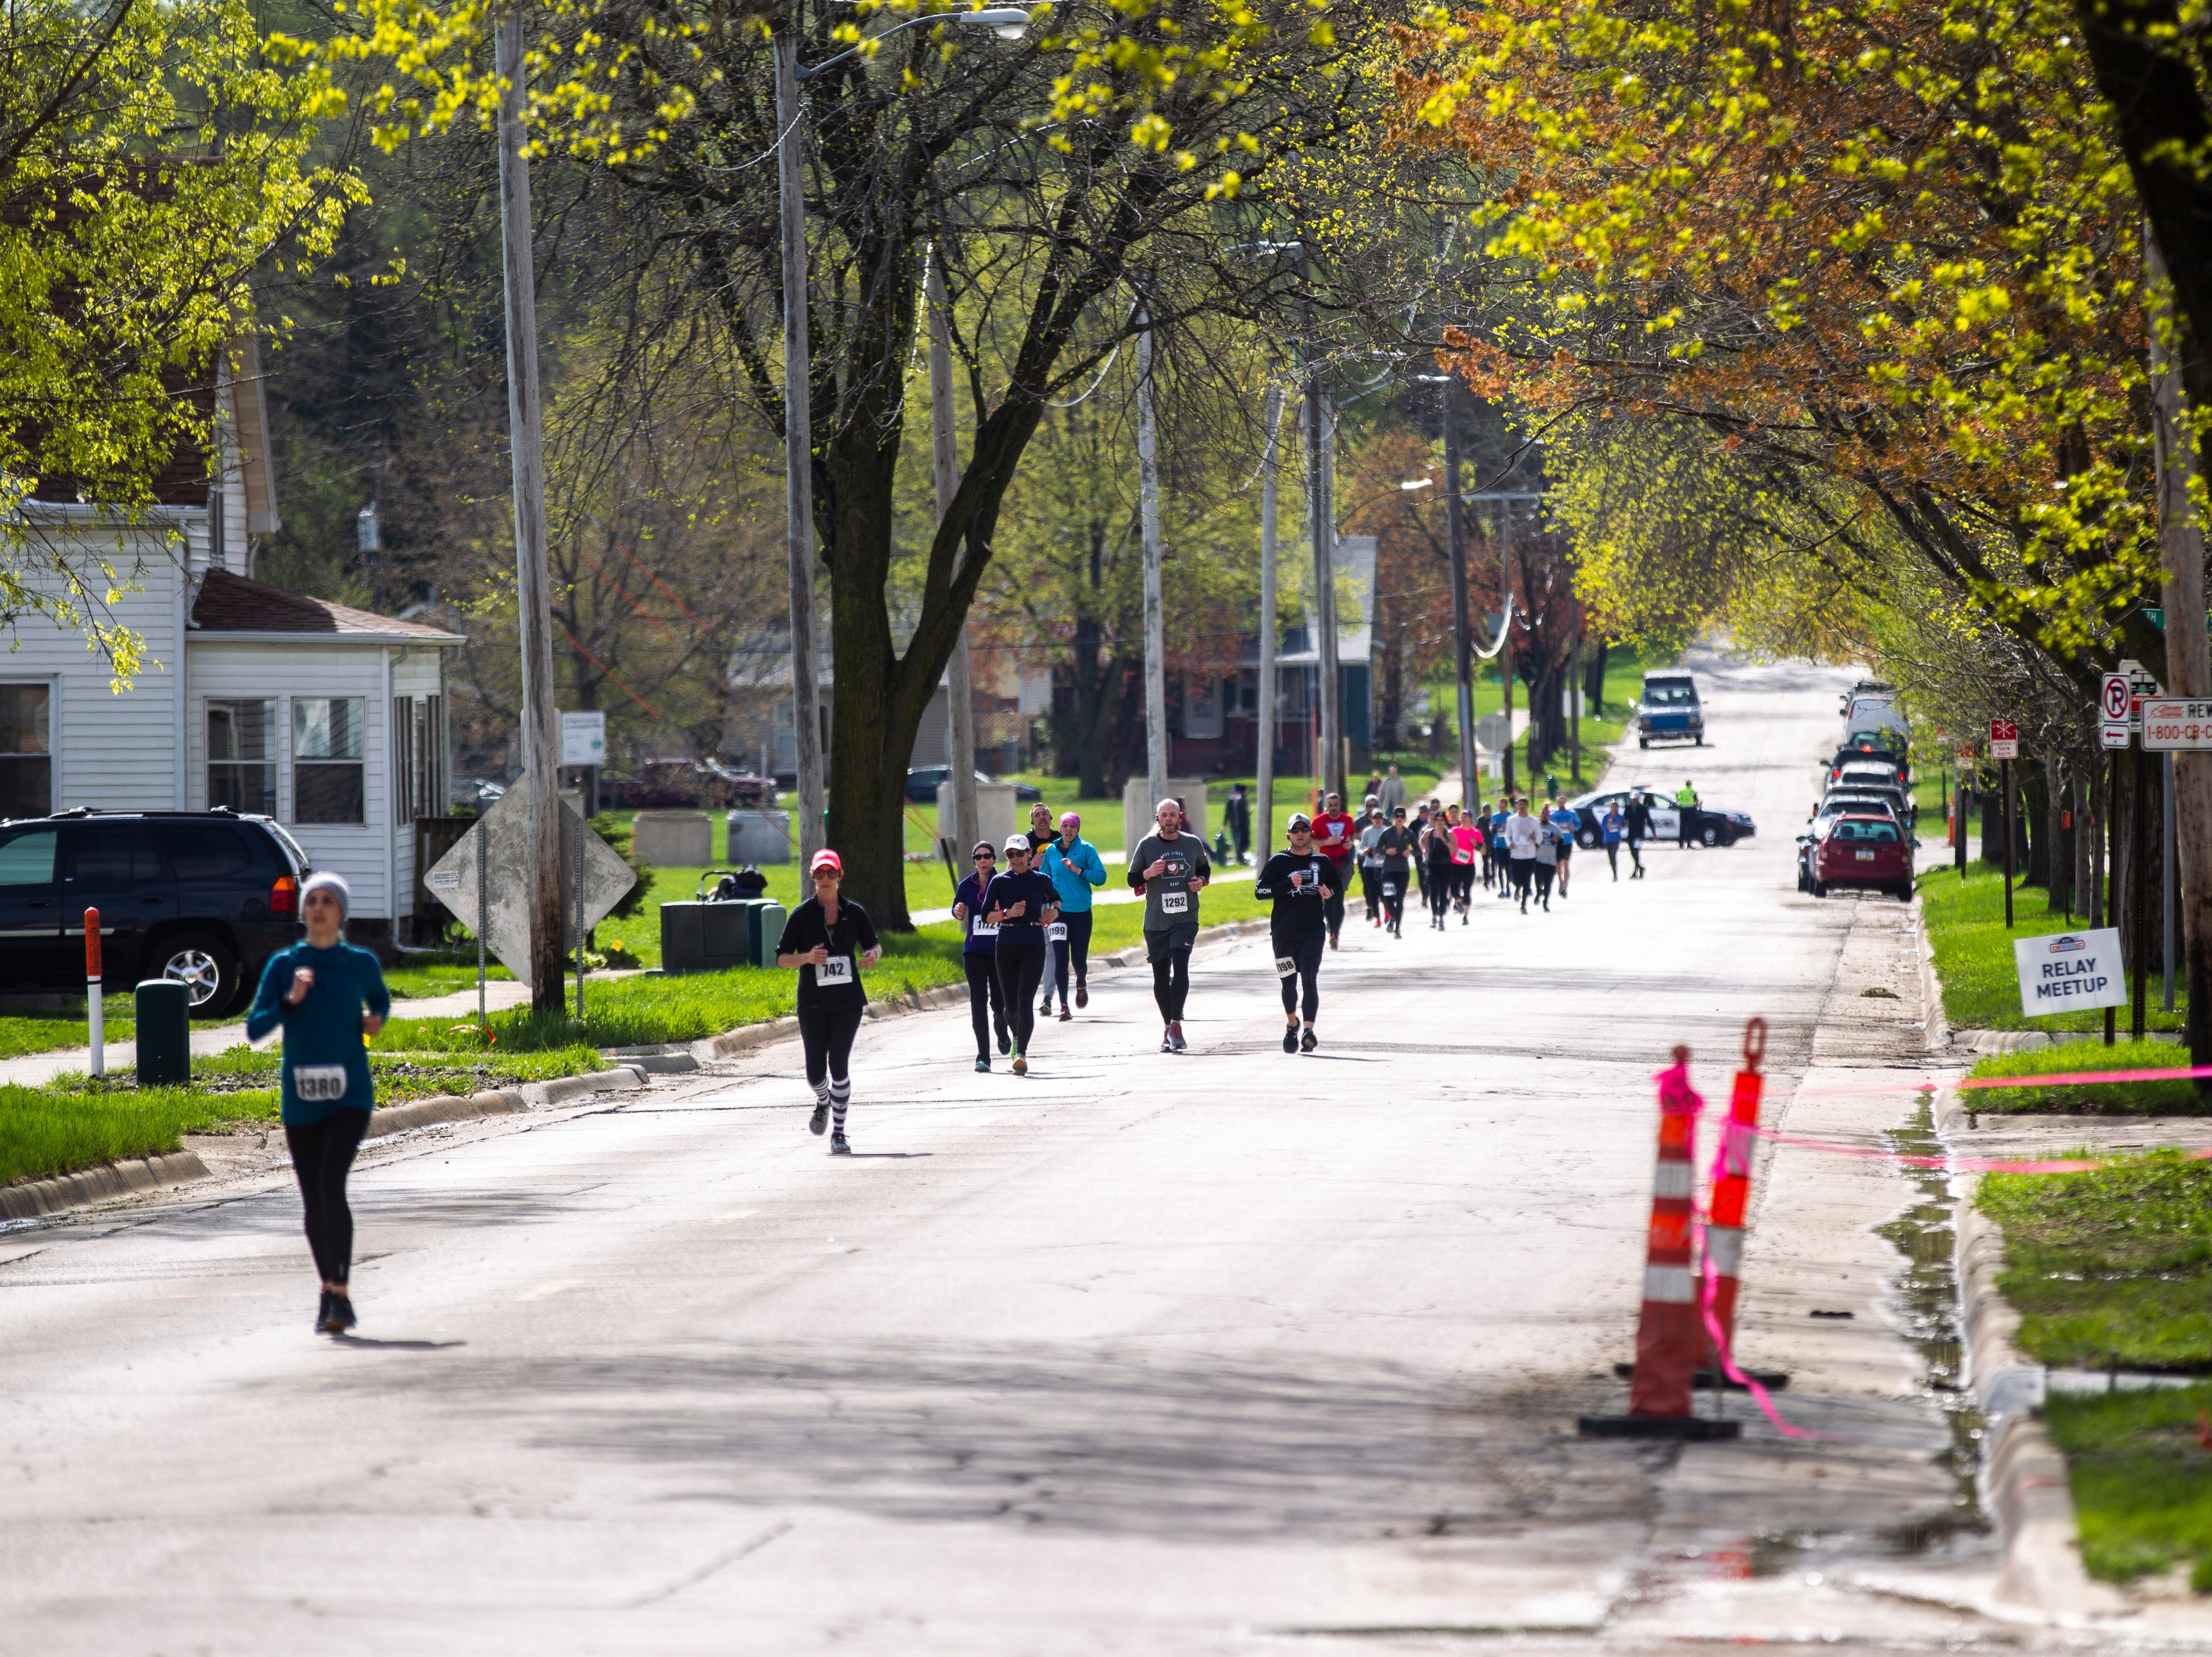 Runners make their way through the final stretch of the route past the 26 mile marker during the second annual Run CRANDIC marathon, Sunday, April 28, 2019, along C Street SW in Cedar Rapids, Iowa.